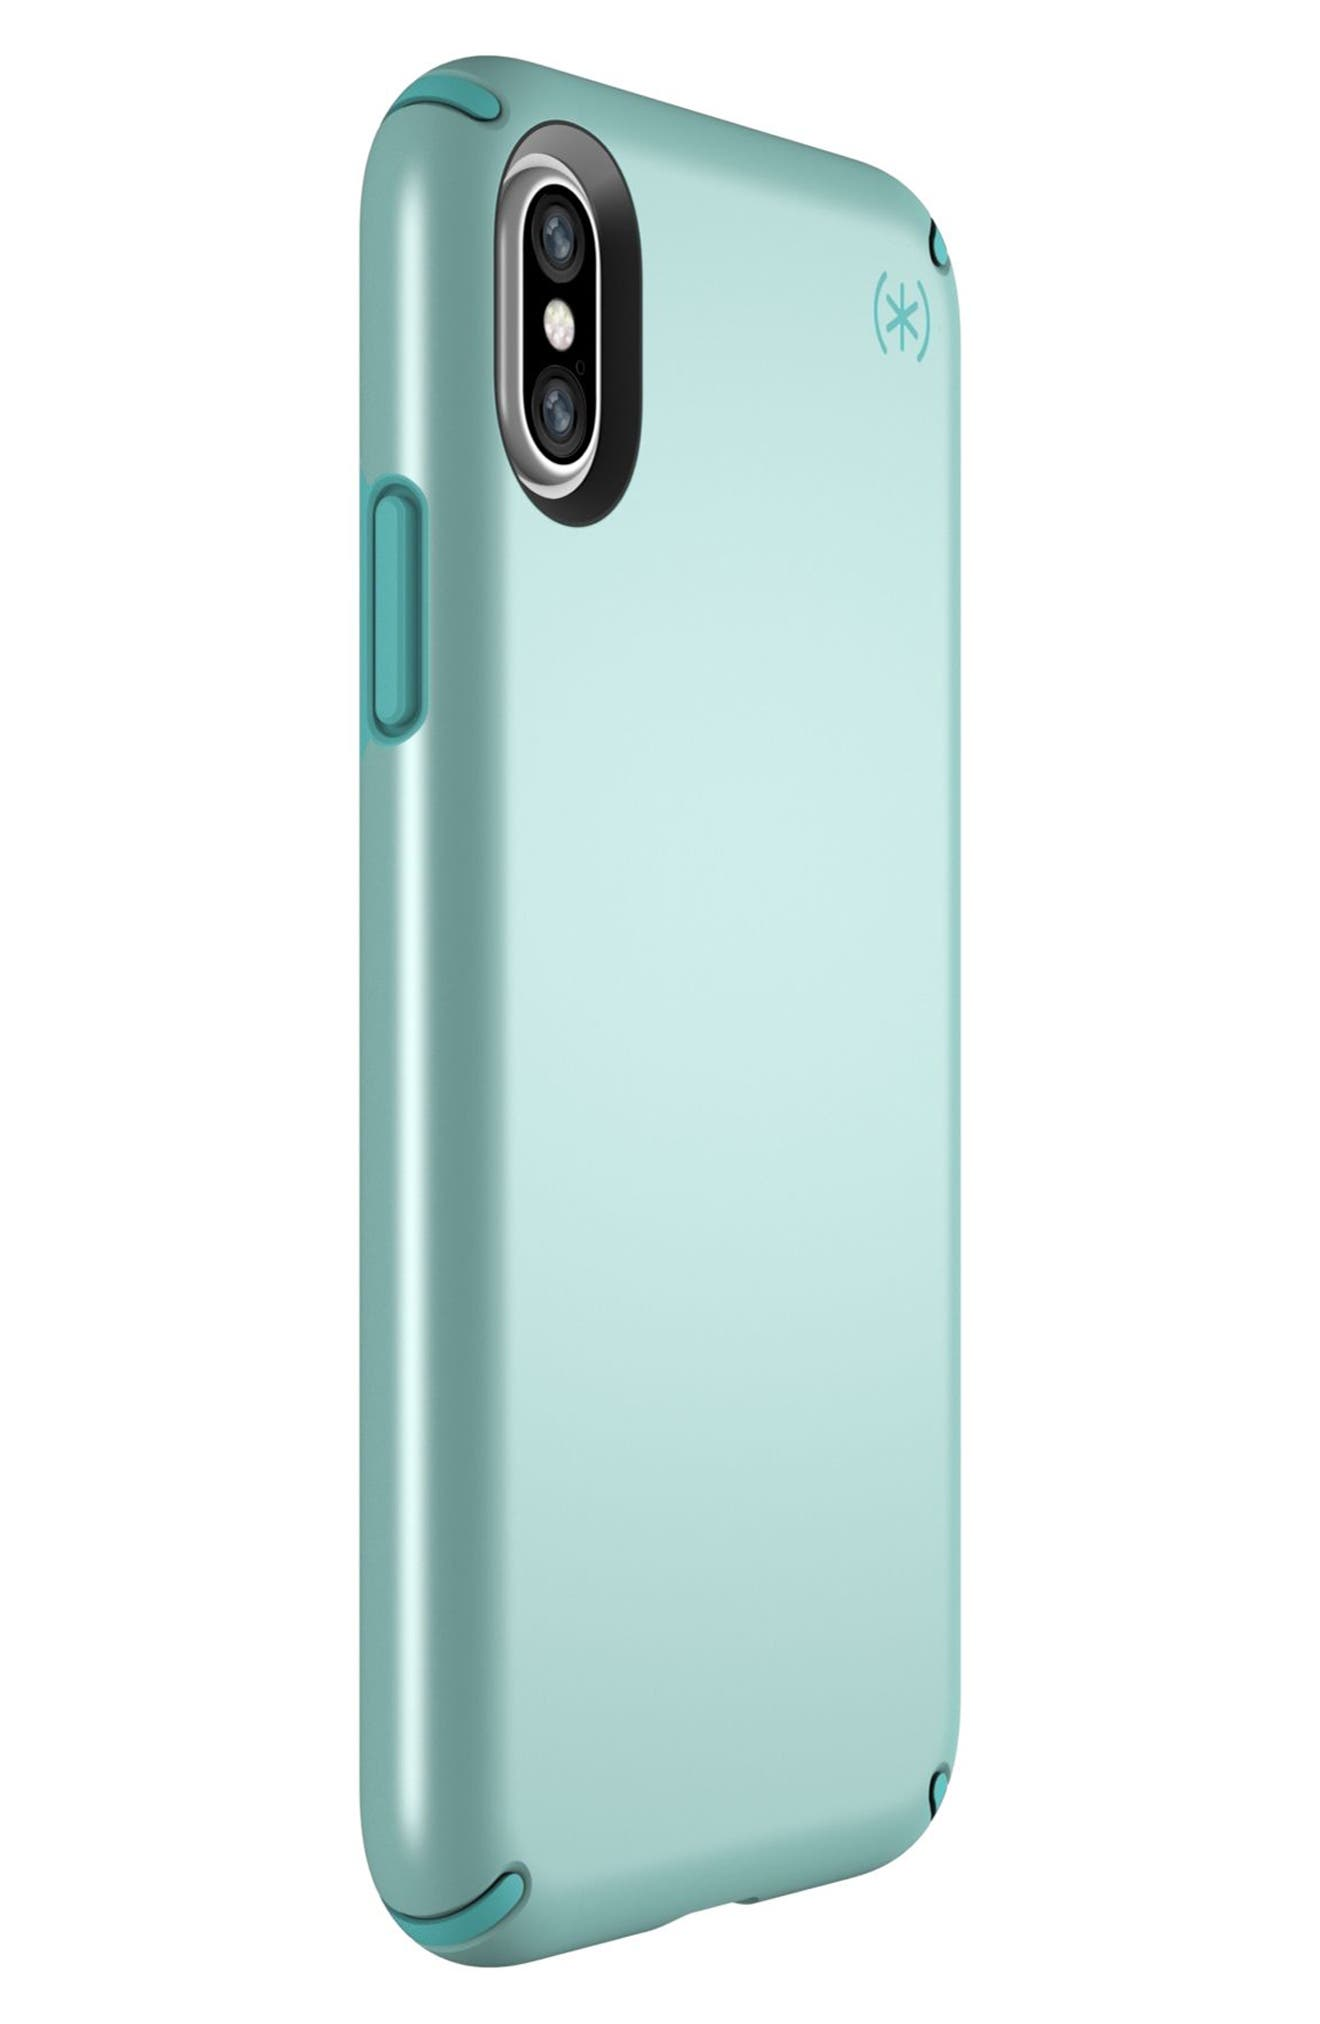 iPhone X Case,                             Alternate thumbnail 2, color,                             Peppermint Green / Teal